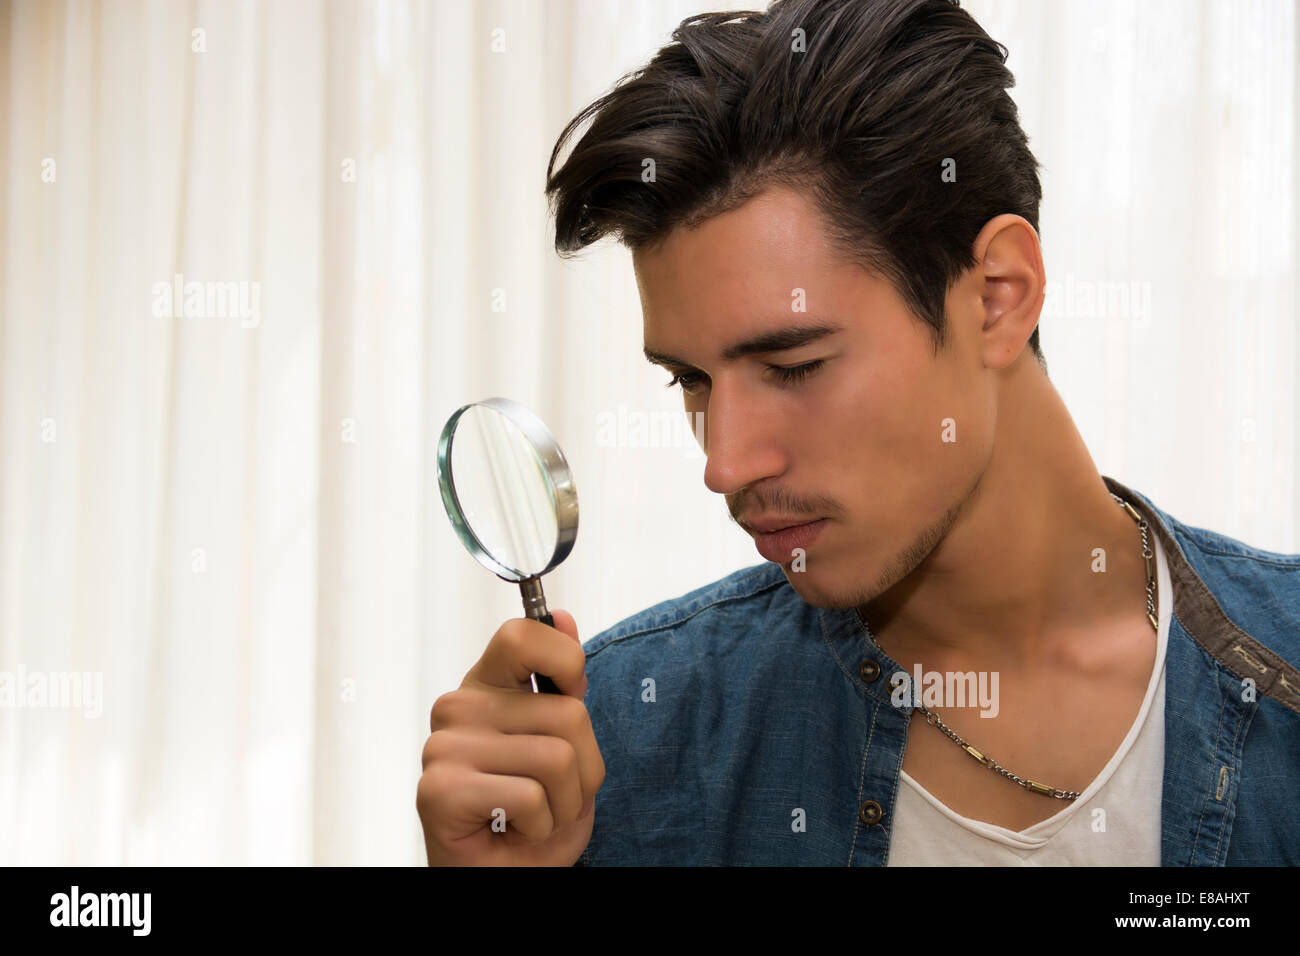 Young man looking through a magnifying glass in a conceptual image of a detective searching for clues, inspection, - Stock Image